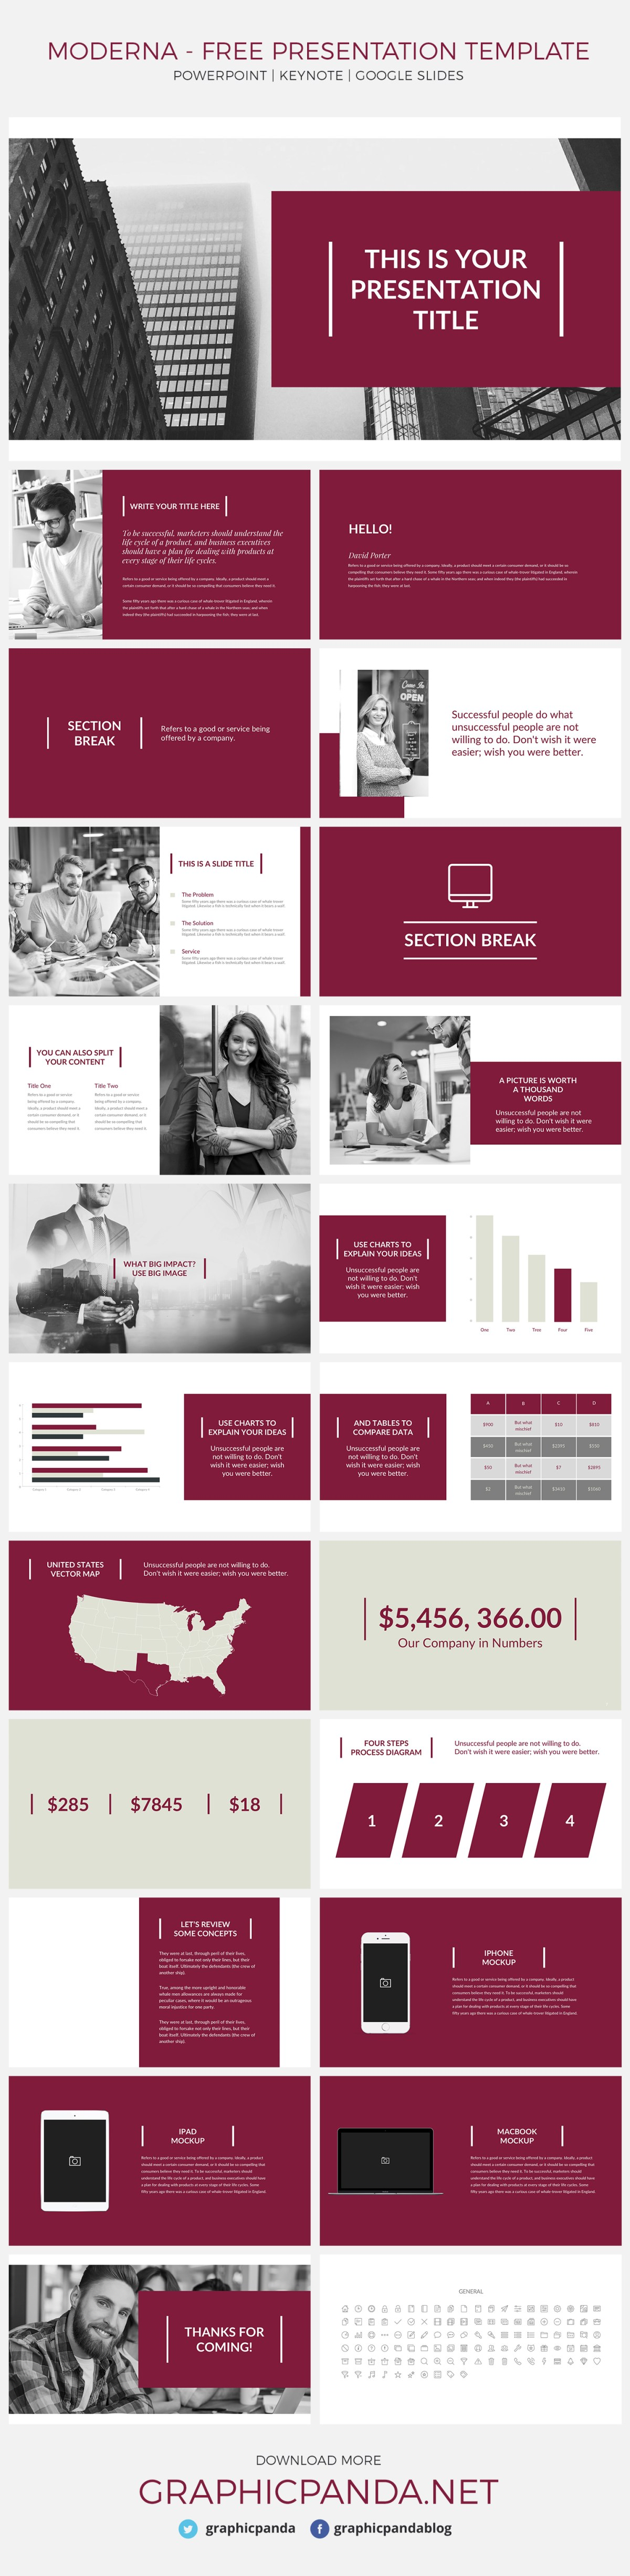 This modern google slides presentation template is unique from any of the others because it makes you look even more professional and helps you to present your data in a more serious way. I am going to highlight some of the specific slides that our designers worked extremely hard on because they all new and going to help you create a successful presentation.